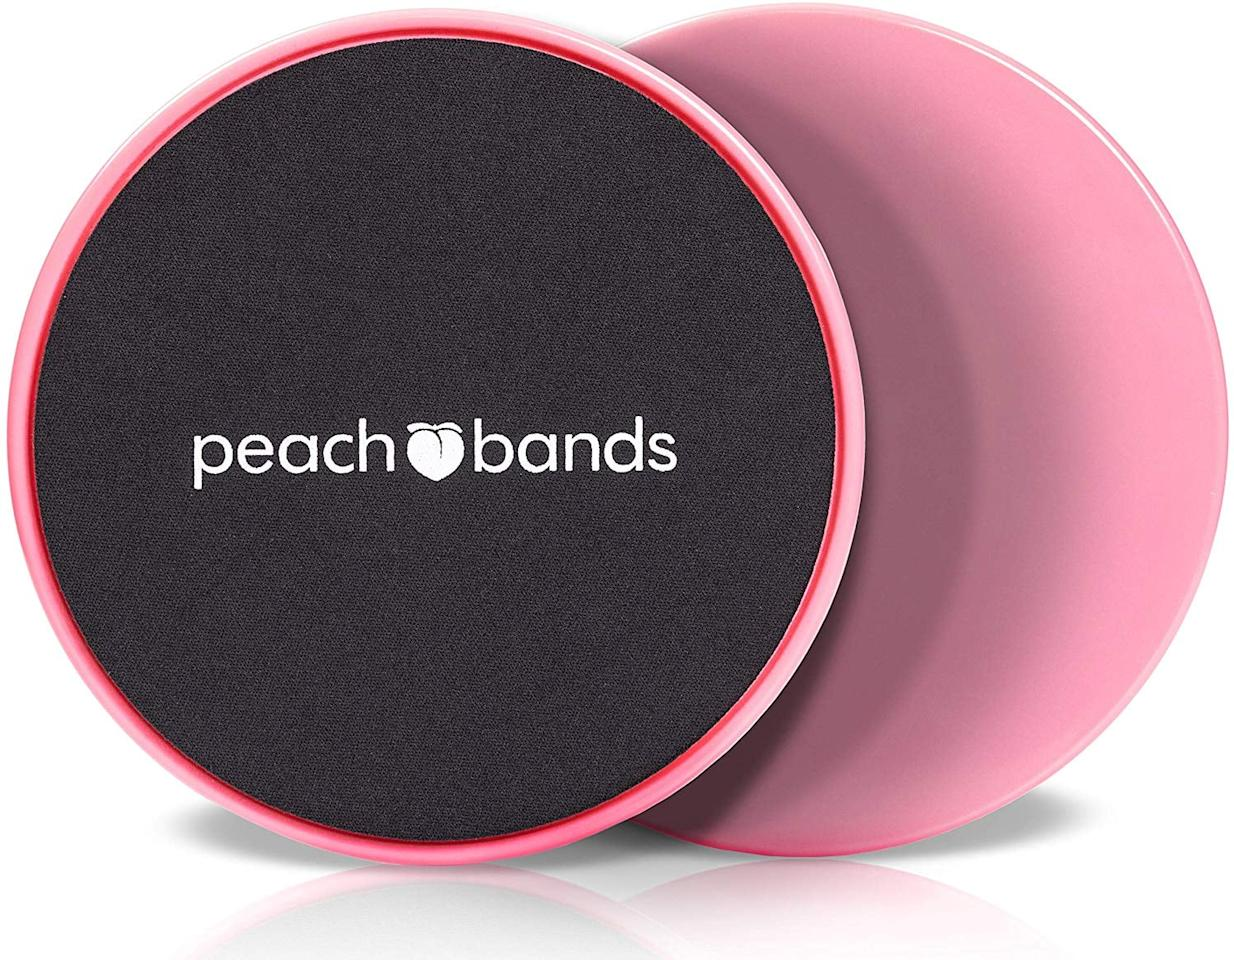 """<p>This <a href=""""https://www.popsugar.com/buy/Peach-Bands-Exercise-Sliders-Set-439931?p_name=Peach%20Bands%20Exercise%20Sliders%20Set&retailer=amazon.com&pid=439931&price=18&evar1=fit%3Aus&evar9=46418649&evar98=https%3A%2F%2Fwww.popsugar.com%2Fphoto-gallery%2F46418649%2Fimage%2F46418693%2FPeach-Bands-Exercise-Sliders-Set&list1=shopping%2Cfitness%20gear%2Chome%20workouts%2Cfitness%20shopping&prop13=api&pdata=1"""" rel=""""nofollow"""" data-shoppable-link=""""1"""" target=""""_blank"""" class=""""ga-track"""" data-ga-category=""""Related"""" data-ga-label=""""https://www.amazon.com/Peach-Bands-Exercise-Fitness-Equipment/dp/B07F1659MR/ref=sr_1_2?crid=260ICY89KXNYF&amp;keywords=best+workout+equipment&amp;qid=1556239371&amp;s=gateway&amp;sprefix=best+workout+equi%2Caps%2C192&amp;sr=8-2"""" data-ga-action=""""In-Line Links"""">Peach Bands Exercise Sliders Set </a> ($18) is great for doing videos at home.</p>"""